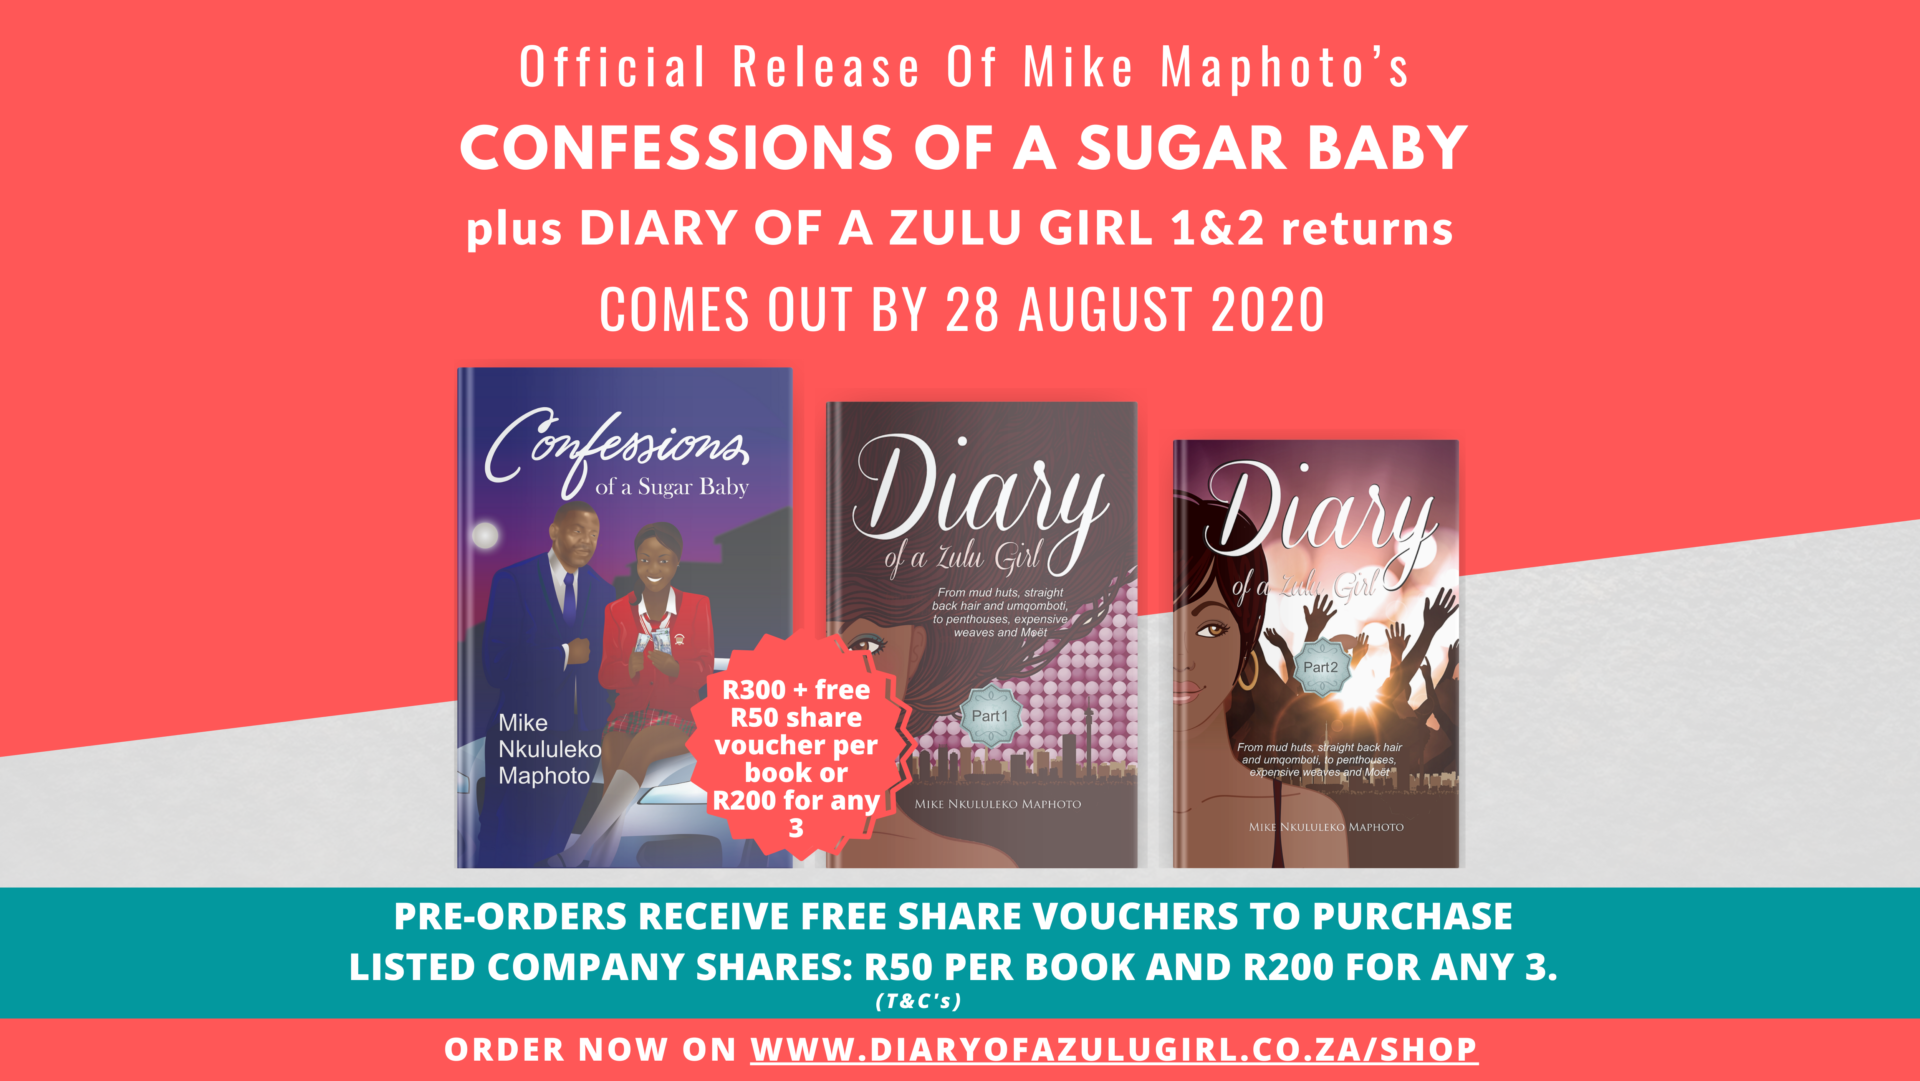 Diary of a Zulu Girl